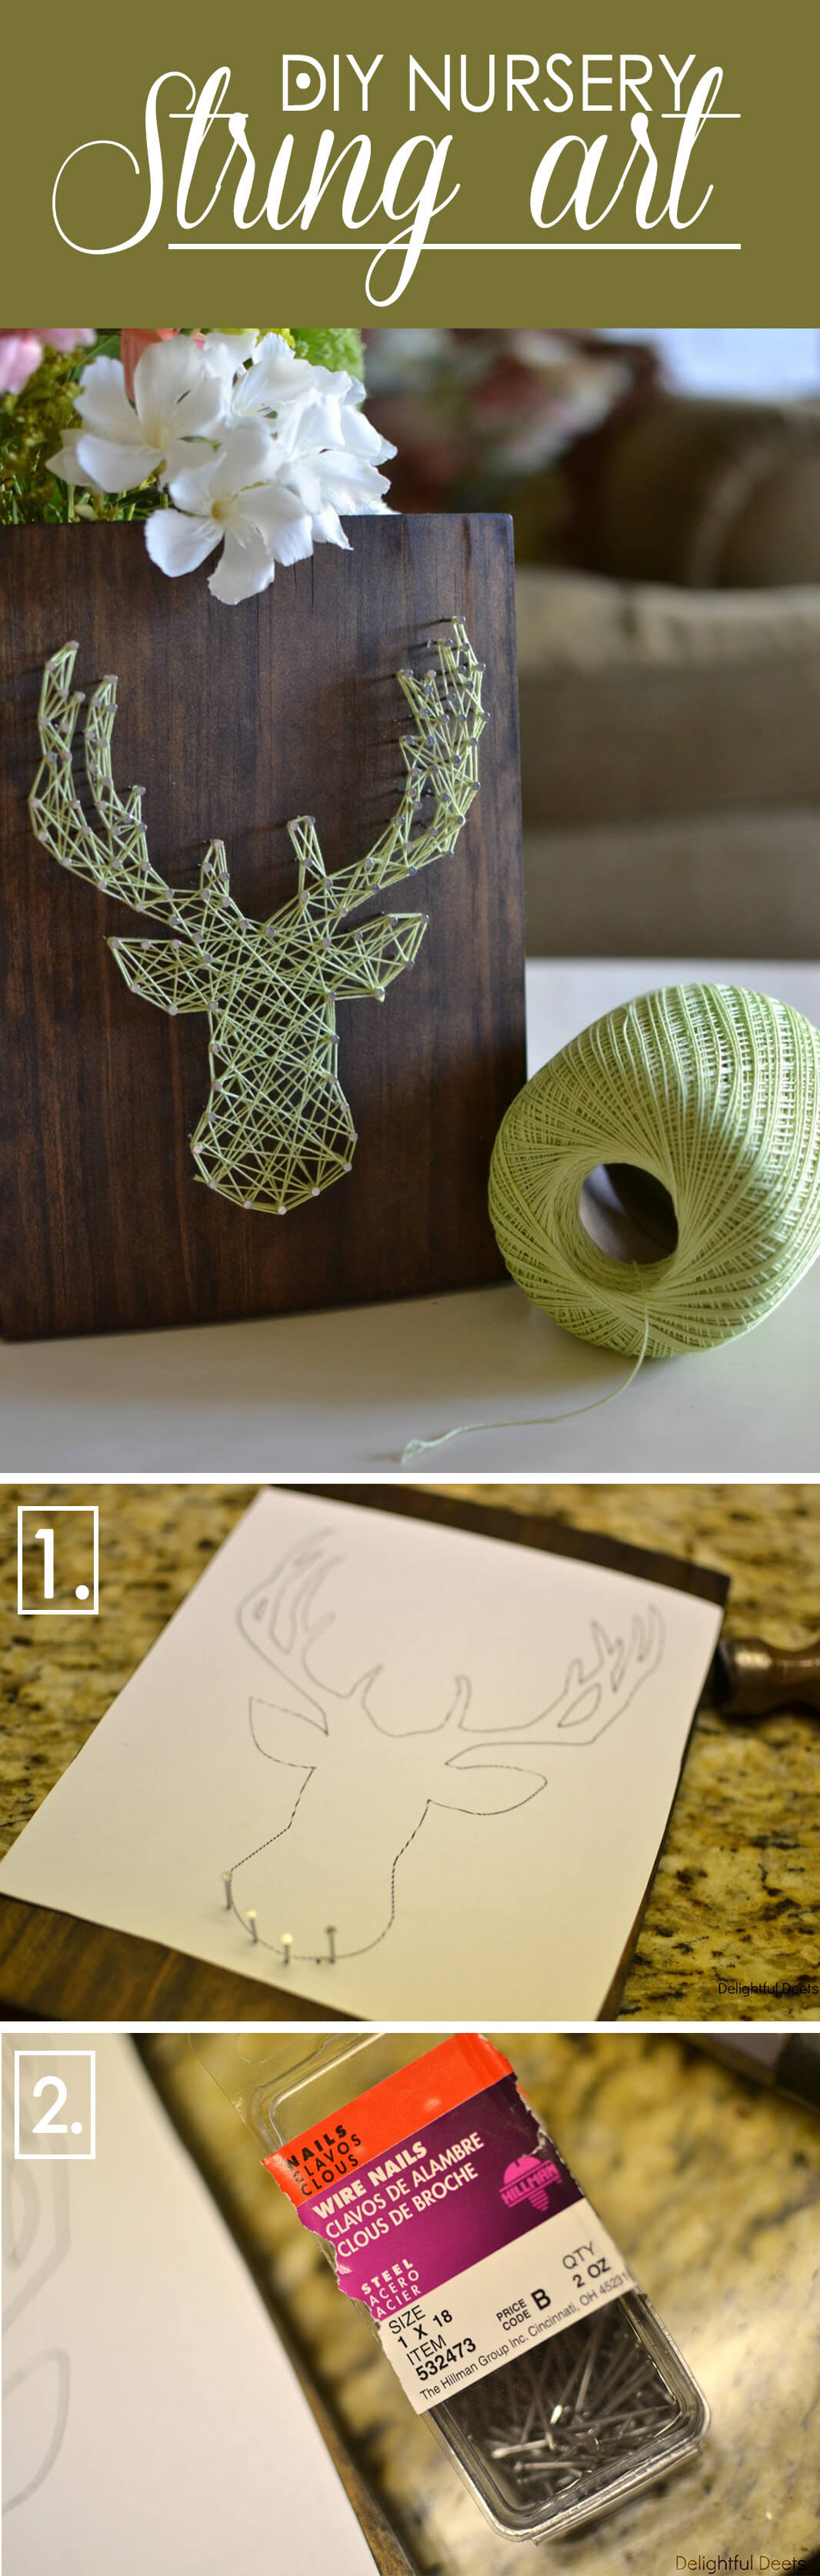 Deer Head String Art On Wood